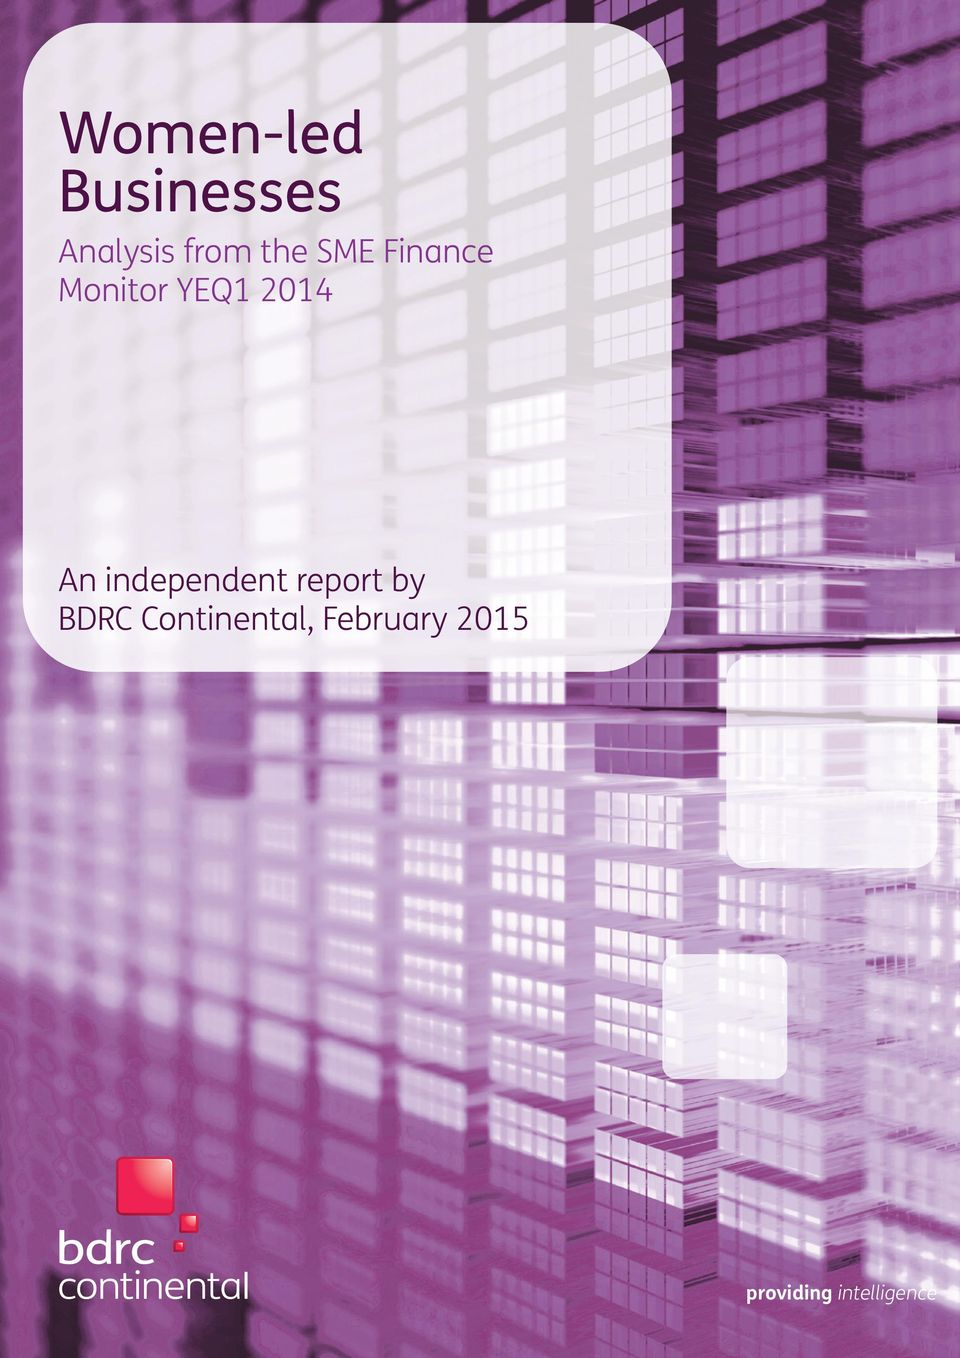 independent report by BDRC